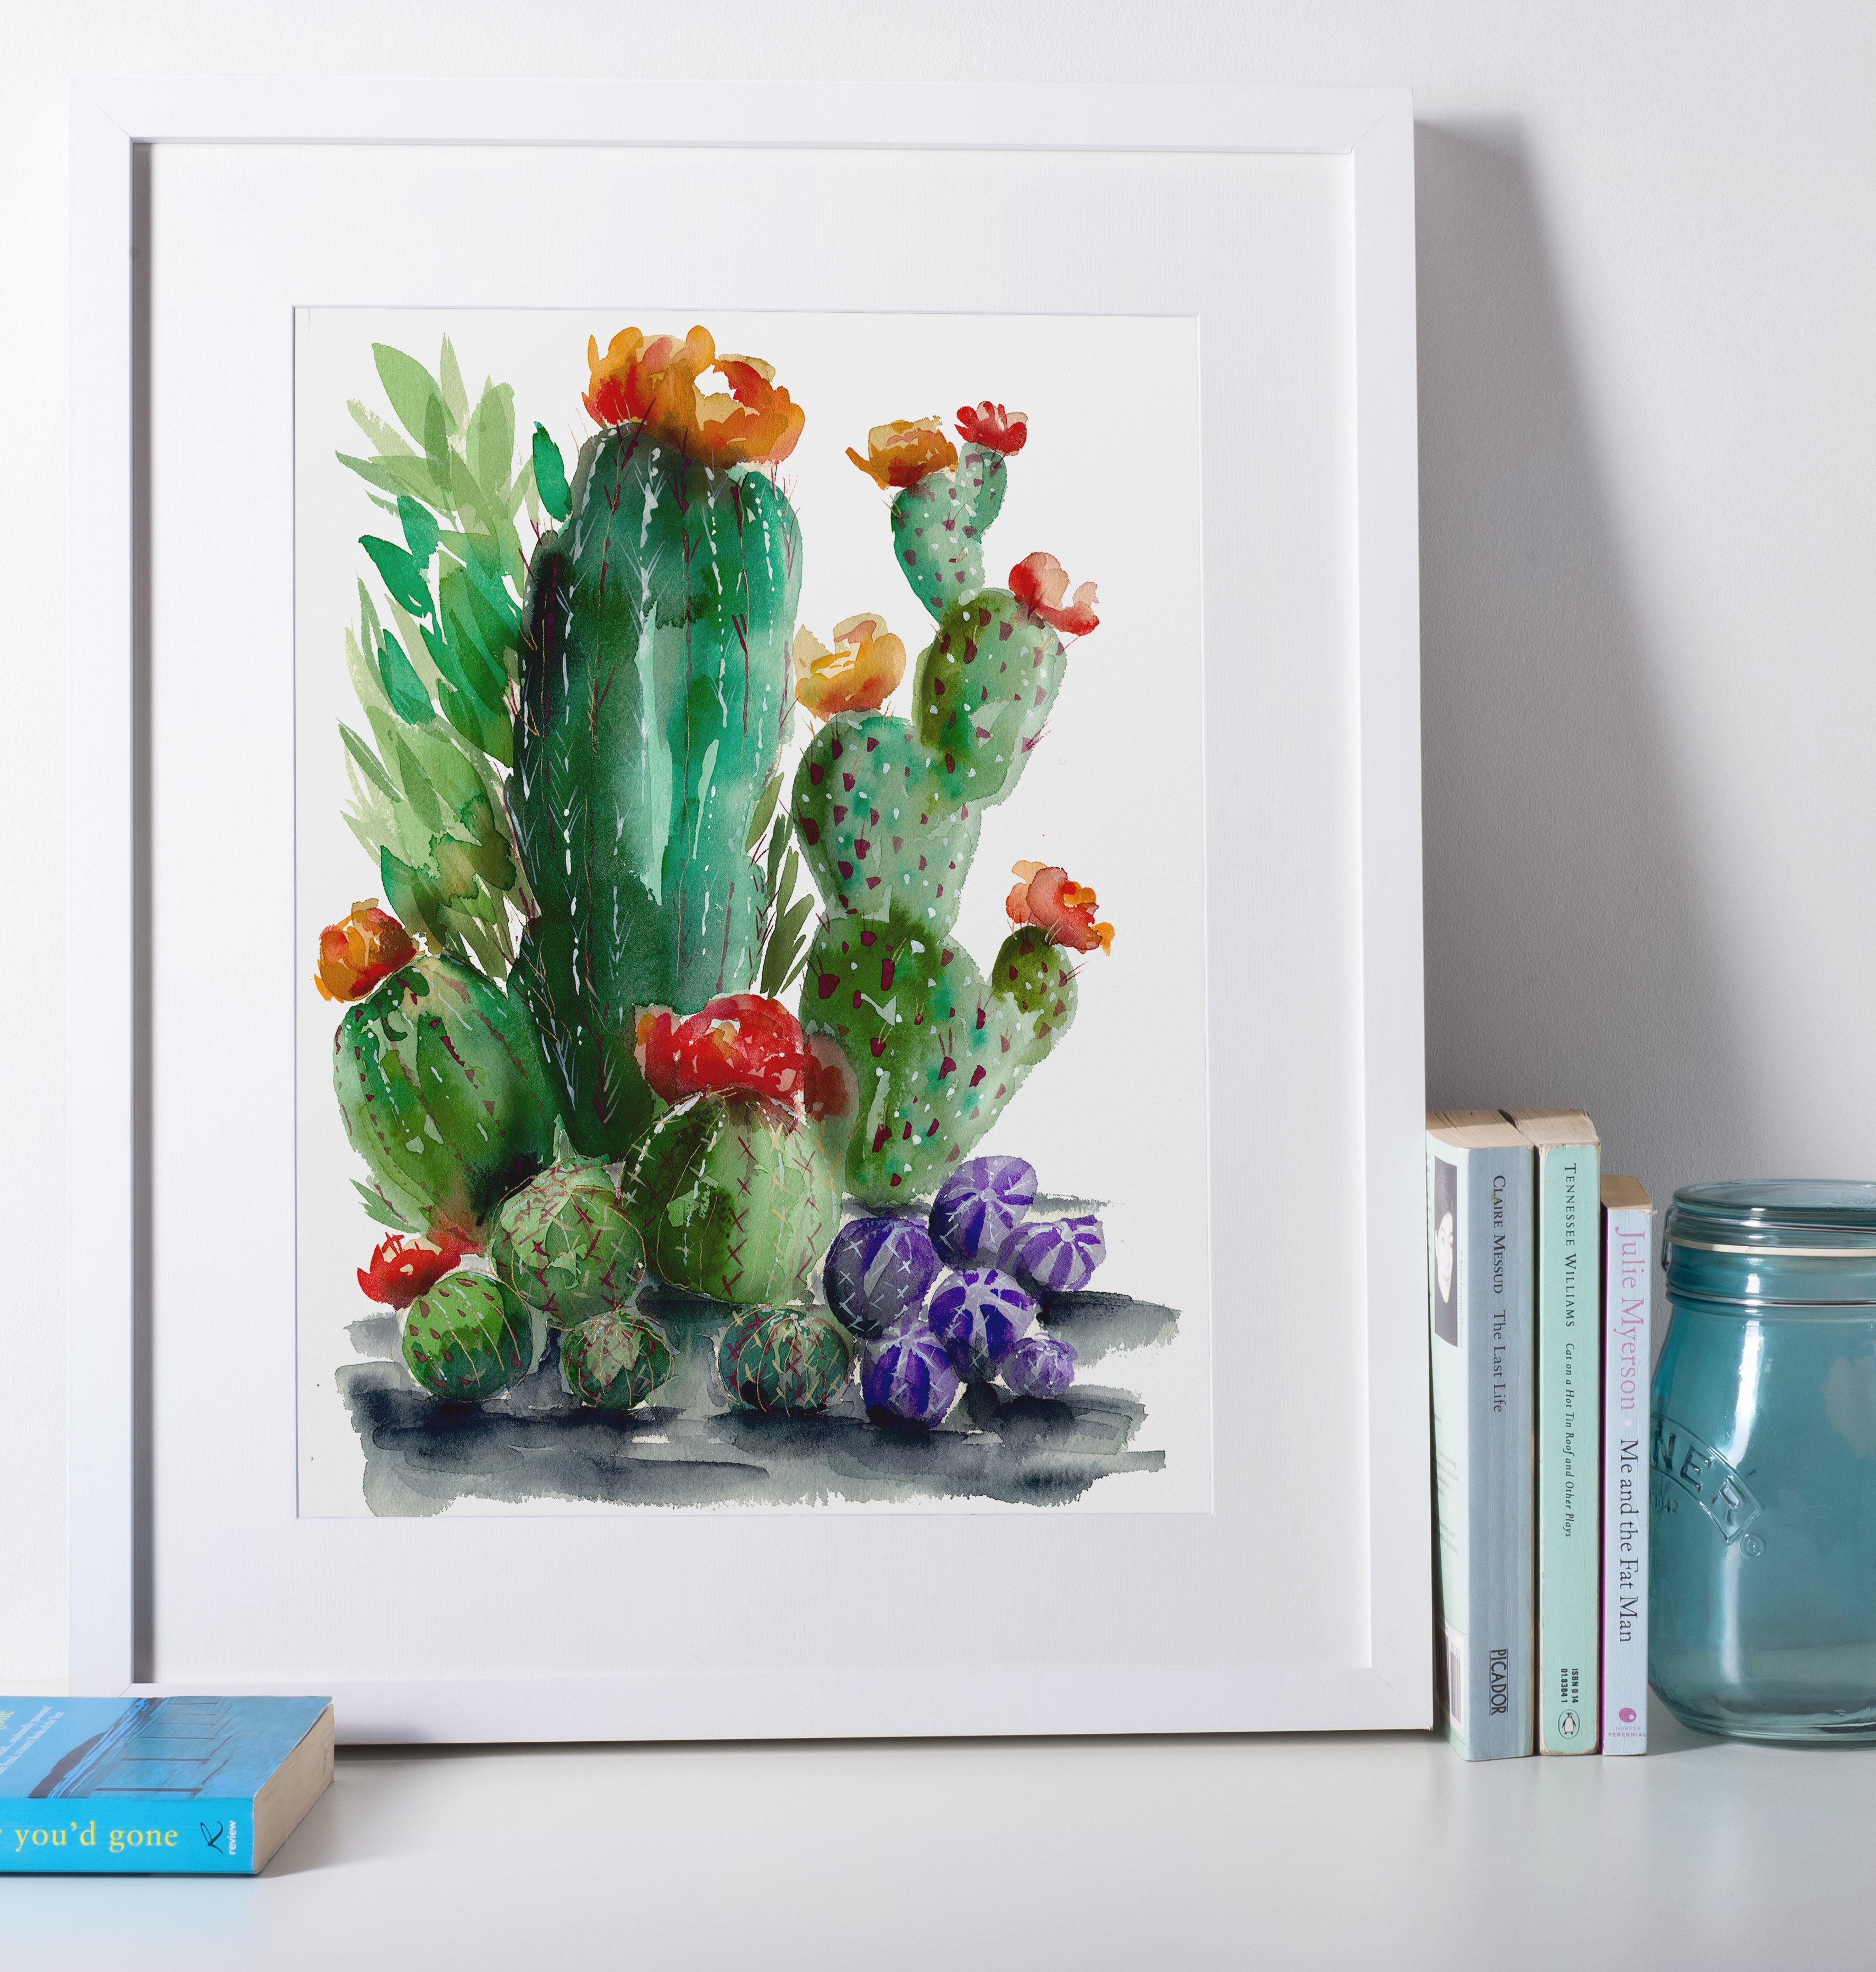 Watercolor Cacti 6 - Cactus Collection - Angelique Abare